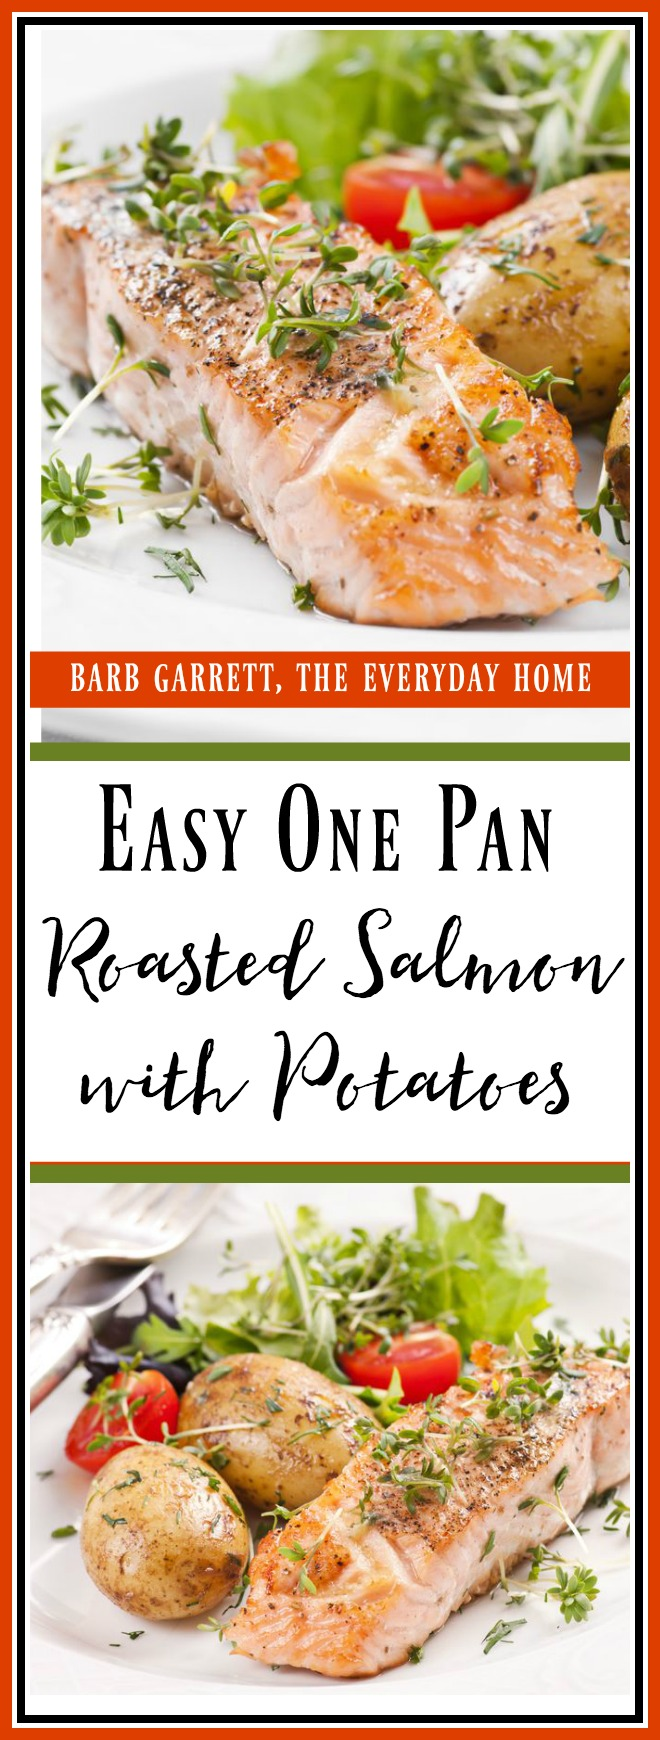 NO FAIL Easy One Pan Roasted Salmon and Potatoes | The Everyday Home | www.everydayhomeblog.com